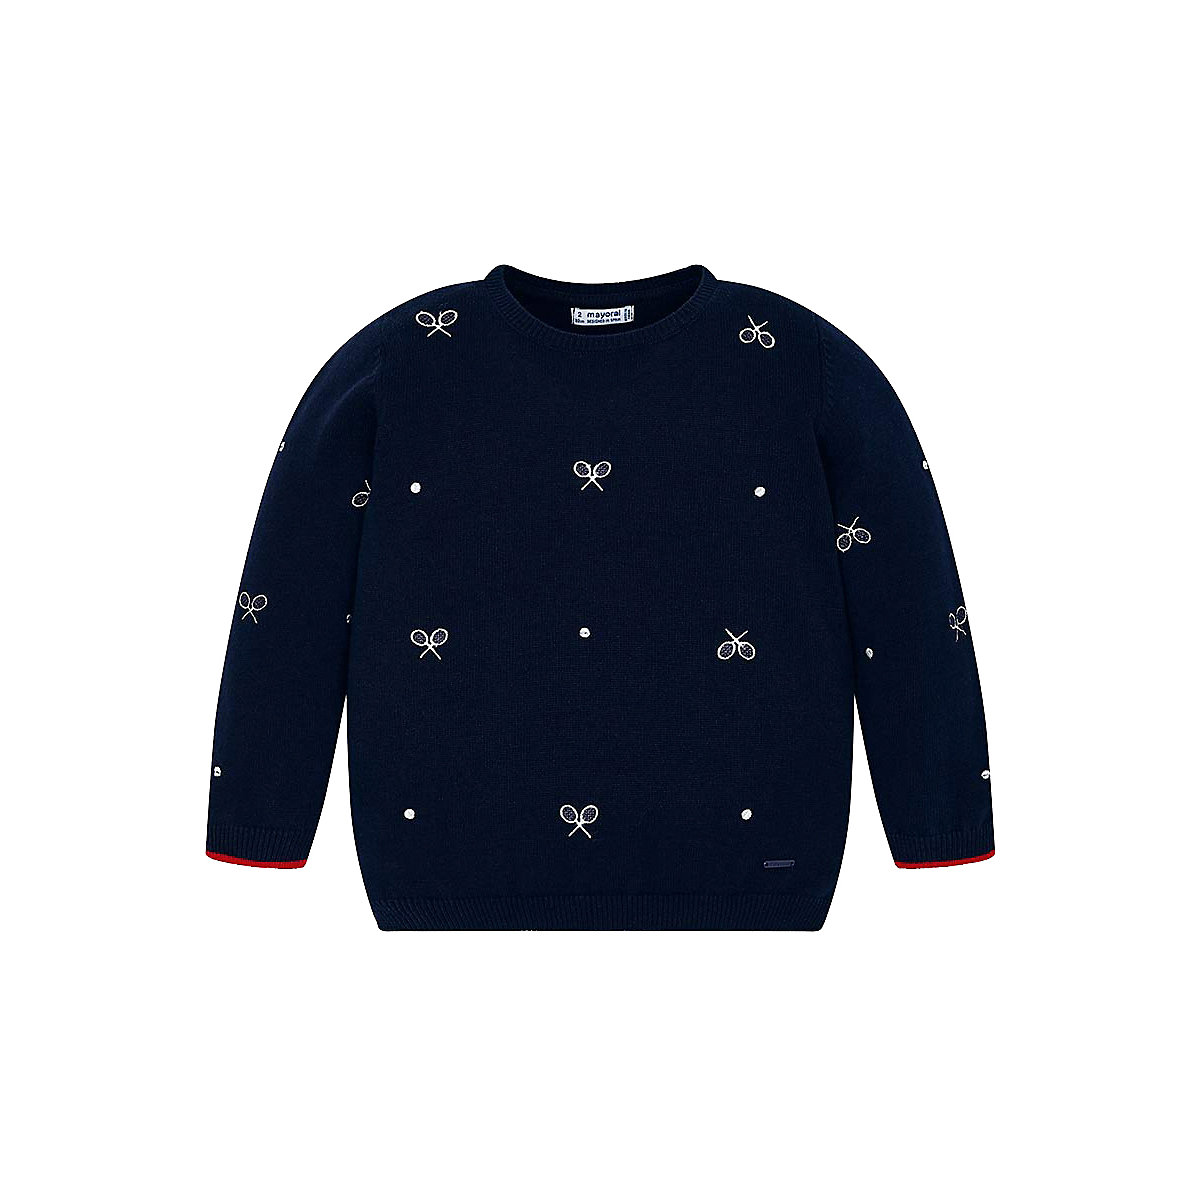 Фото - MAYORAL Sweaters 10689155 pullover jumper for boys and girls jackets Boys mayoral sweaters 10692403 pullover jumper for boys and girls jackets boys